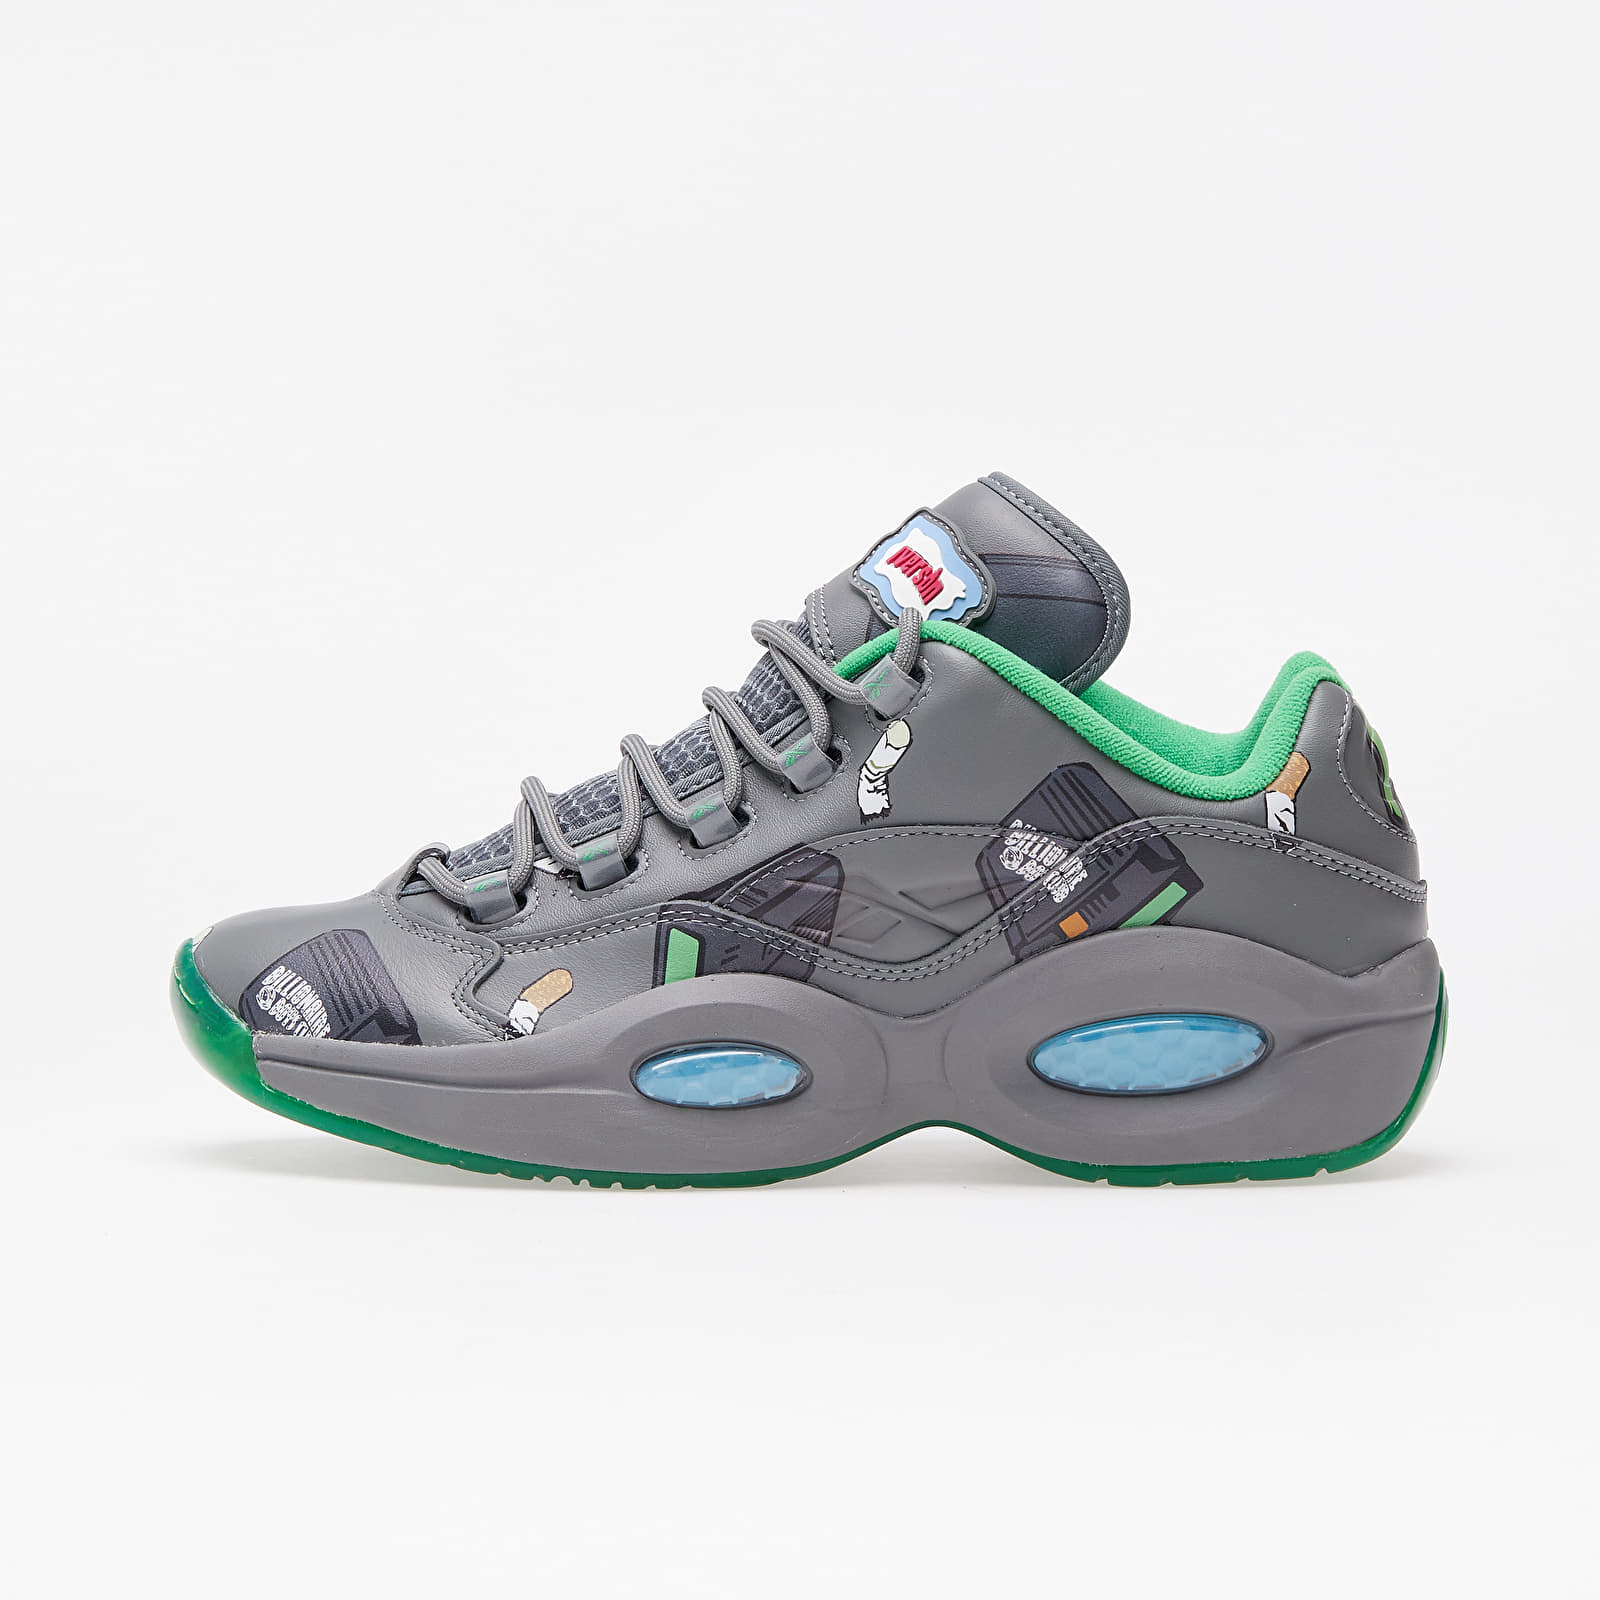 Reebok x BBC Ice Cream Question Low Trgry5/ Raw Green/ Bright Green Cyan FZ4342